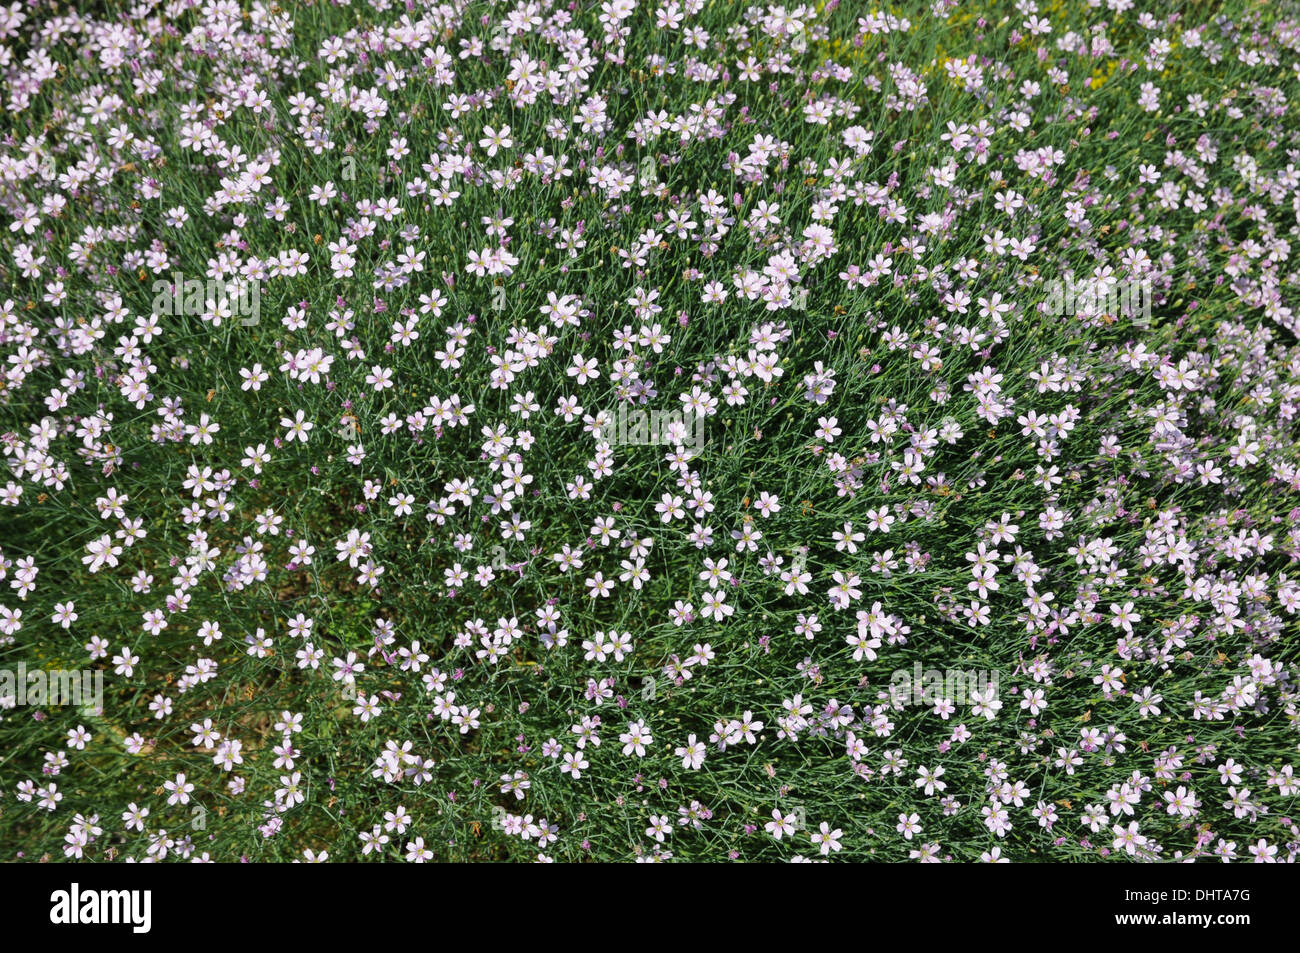 Tunic flowers - Stock Image